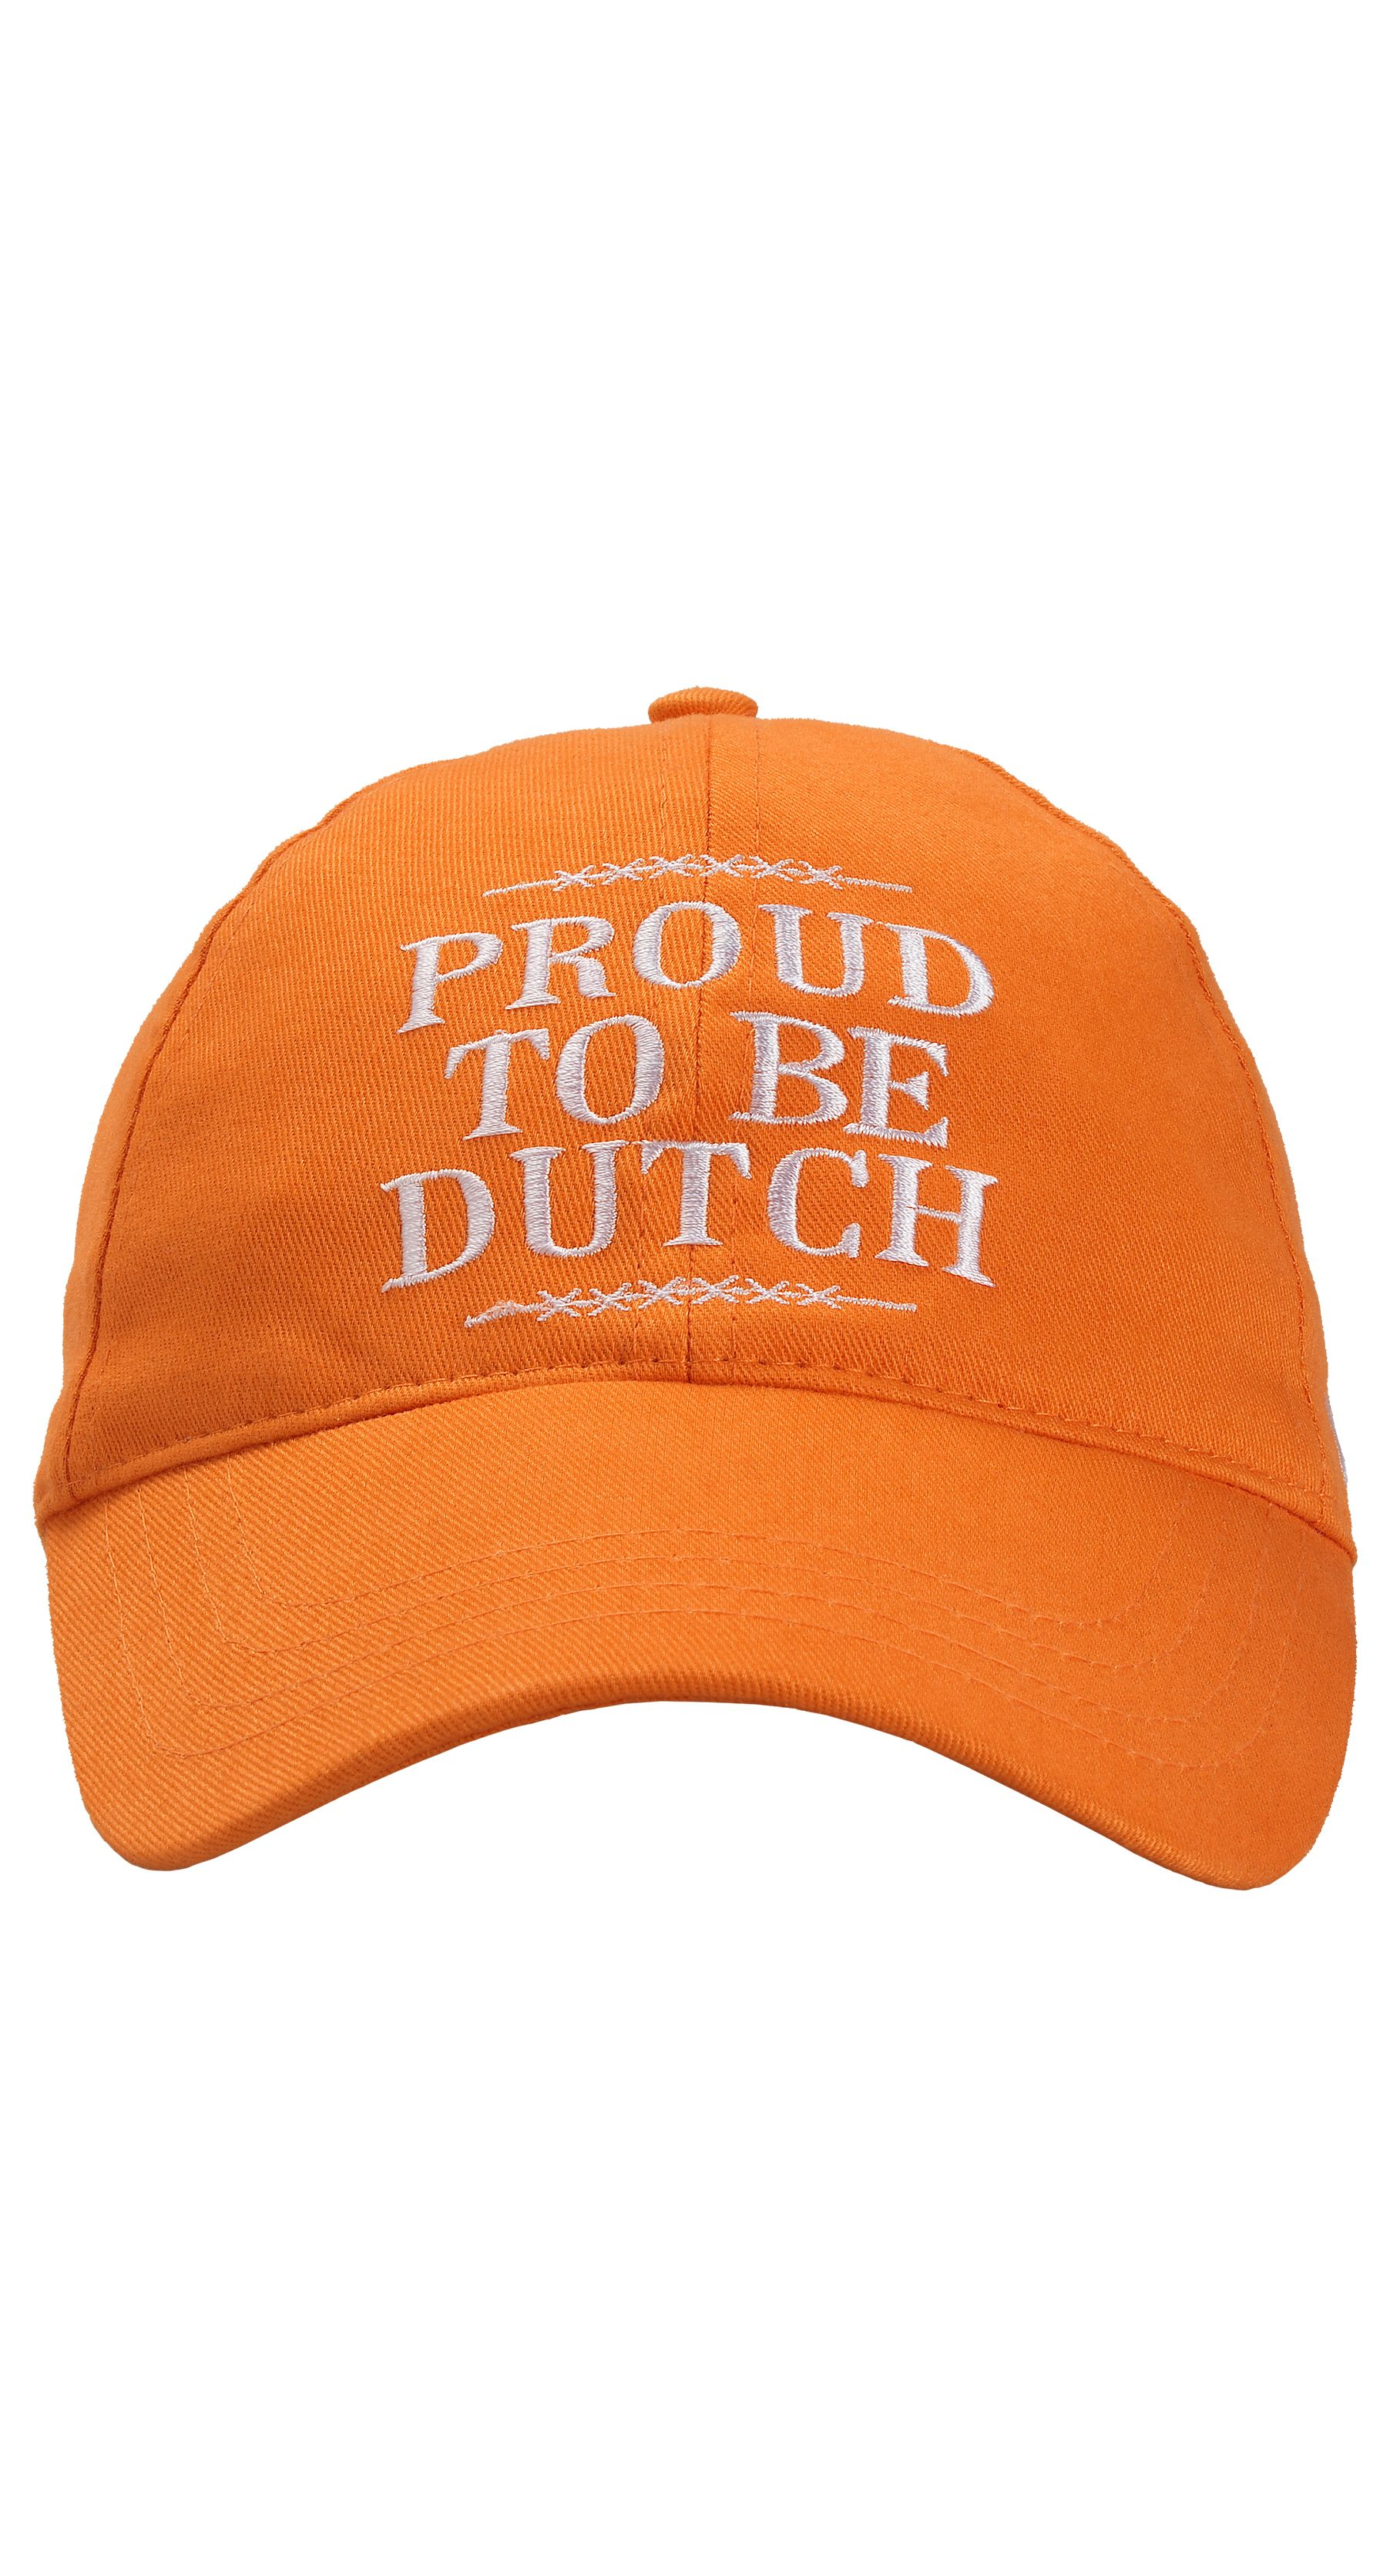 b1b2076b4f8 That s how you show you support the Dutch soccer team on their way to  Brazil.